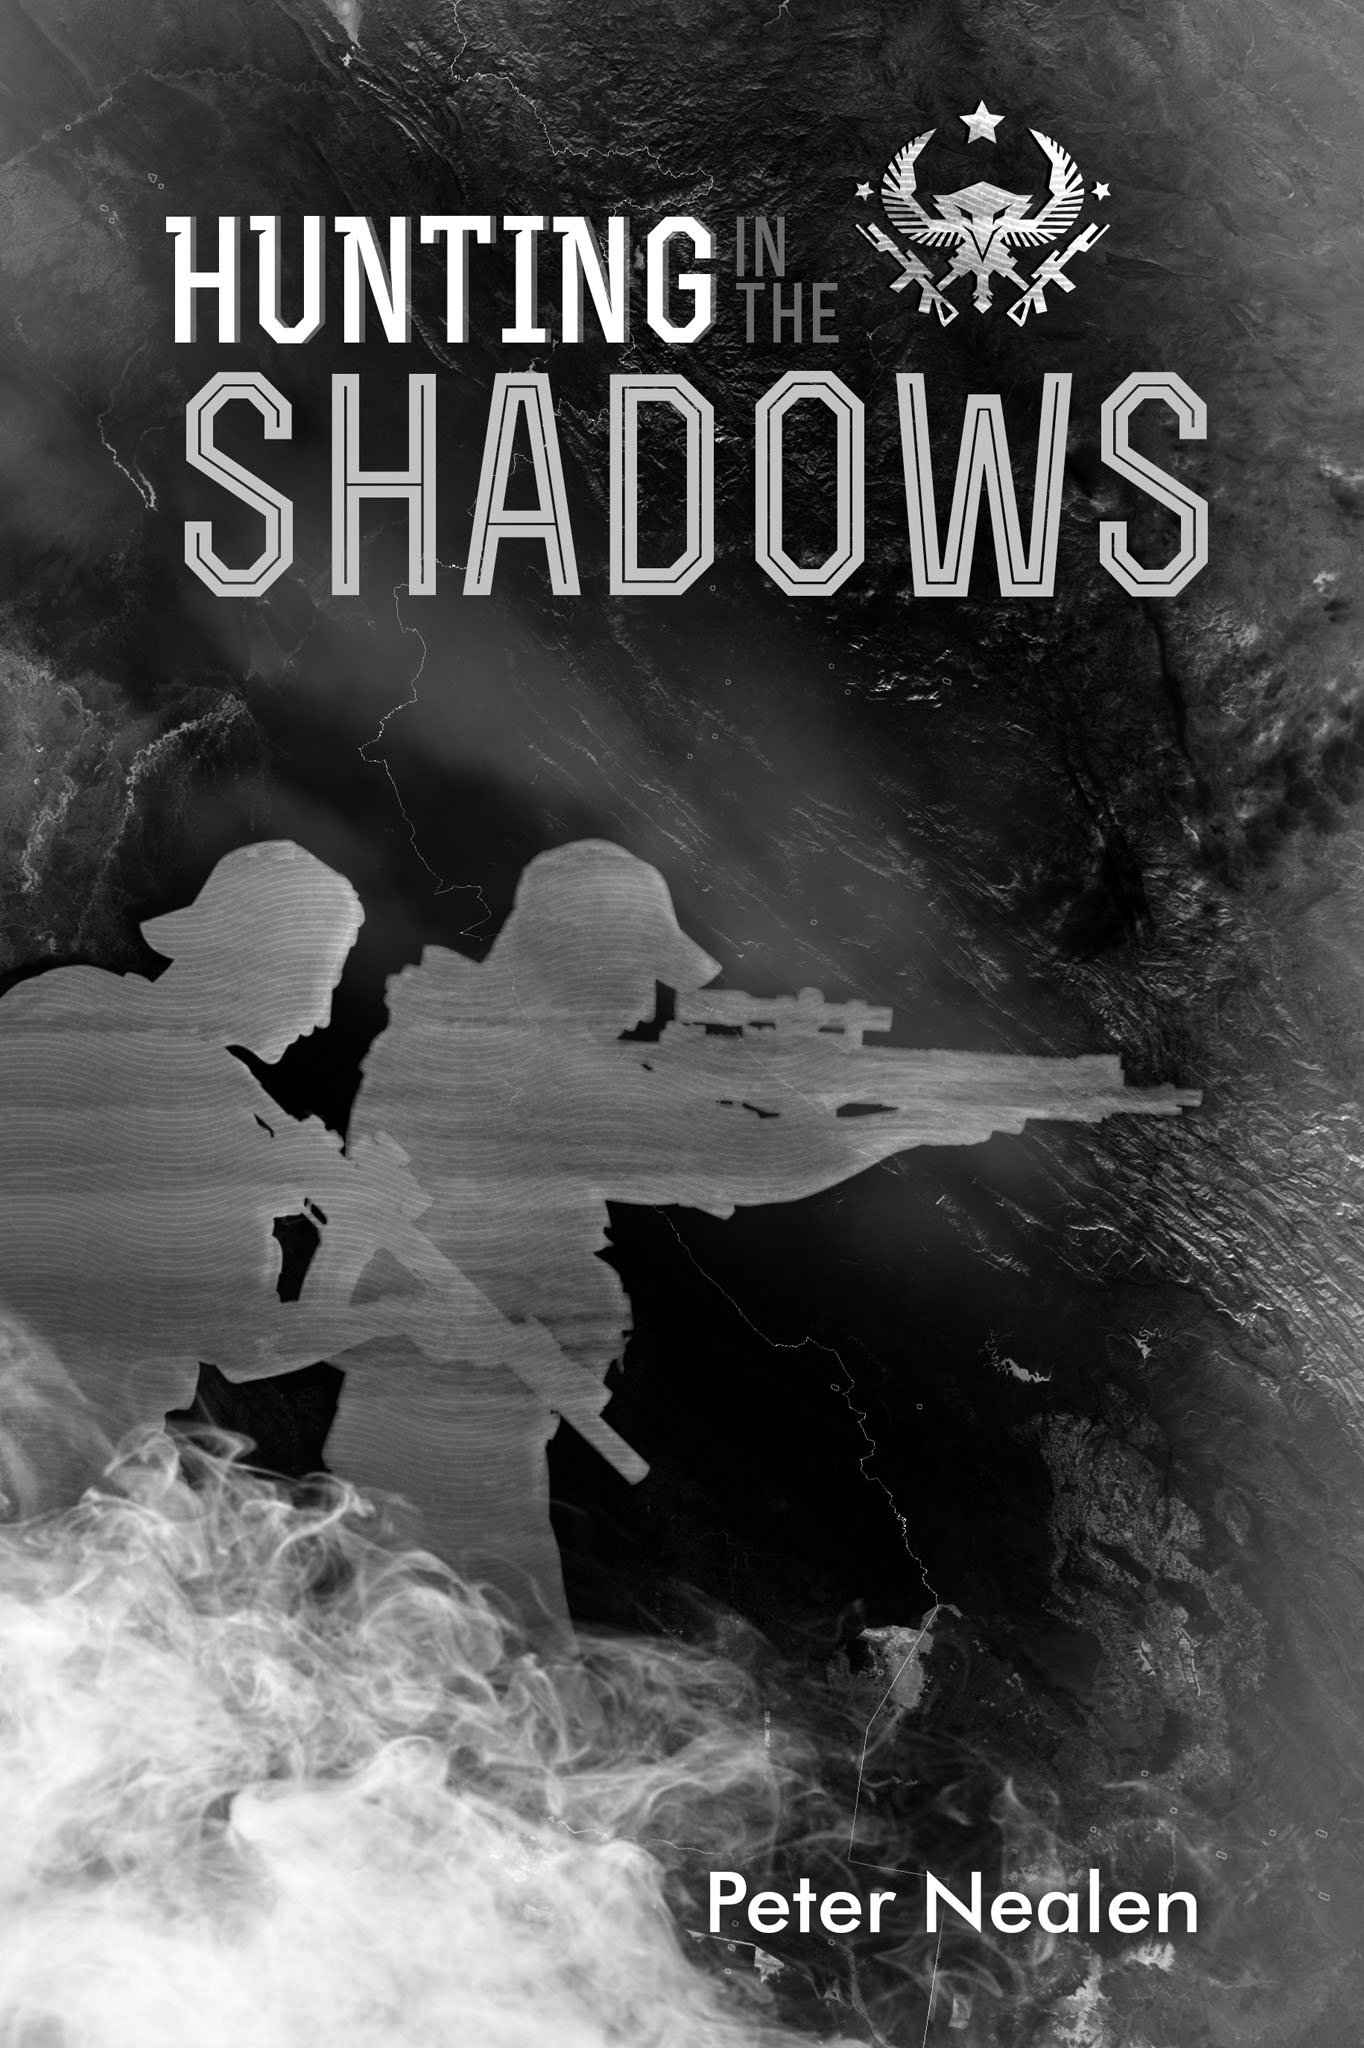 Hunting in the Shadows by Peter Nealen